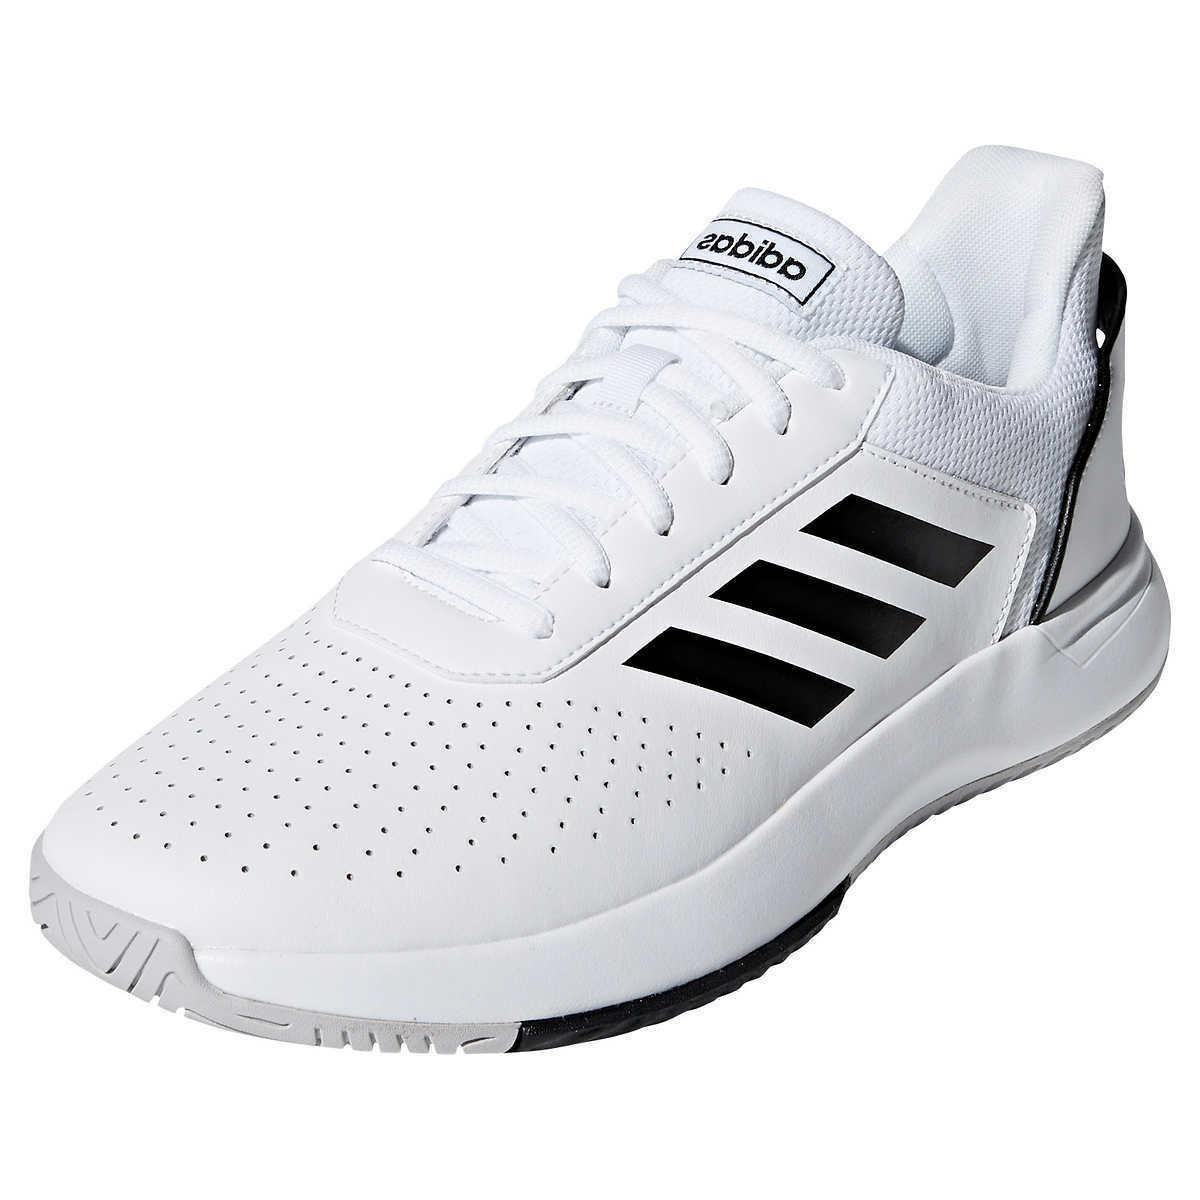 Adidas Black White Courtsmash Shoes - Choose and Color